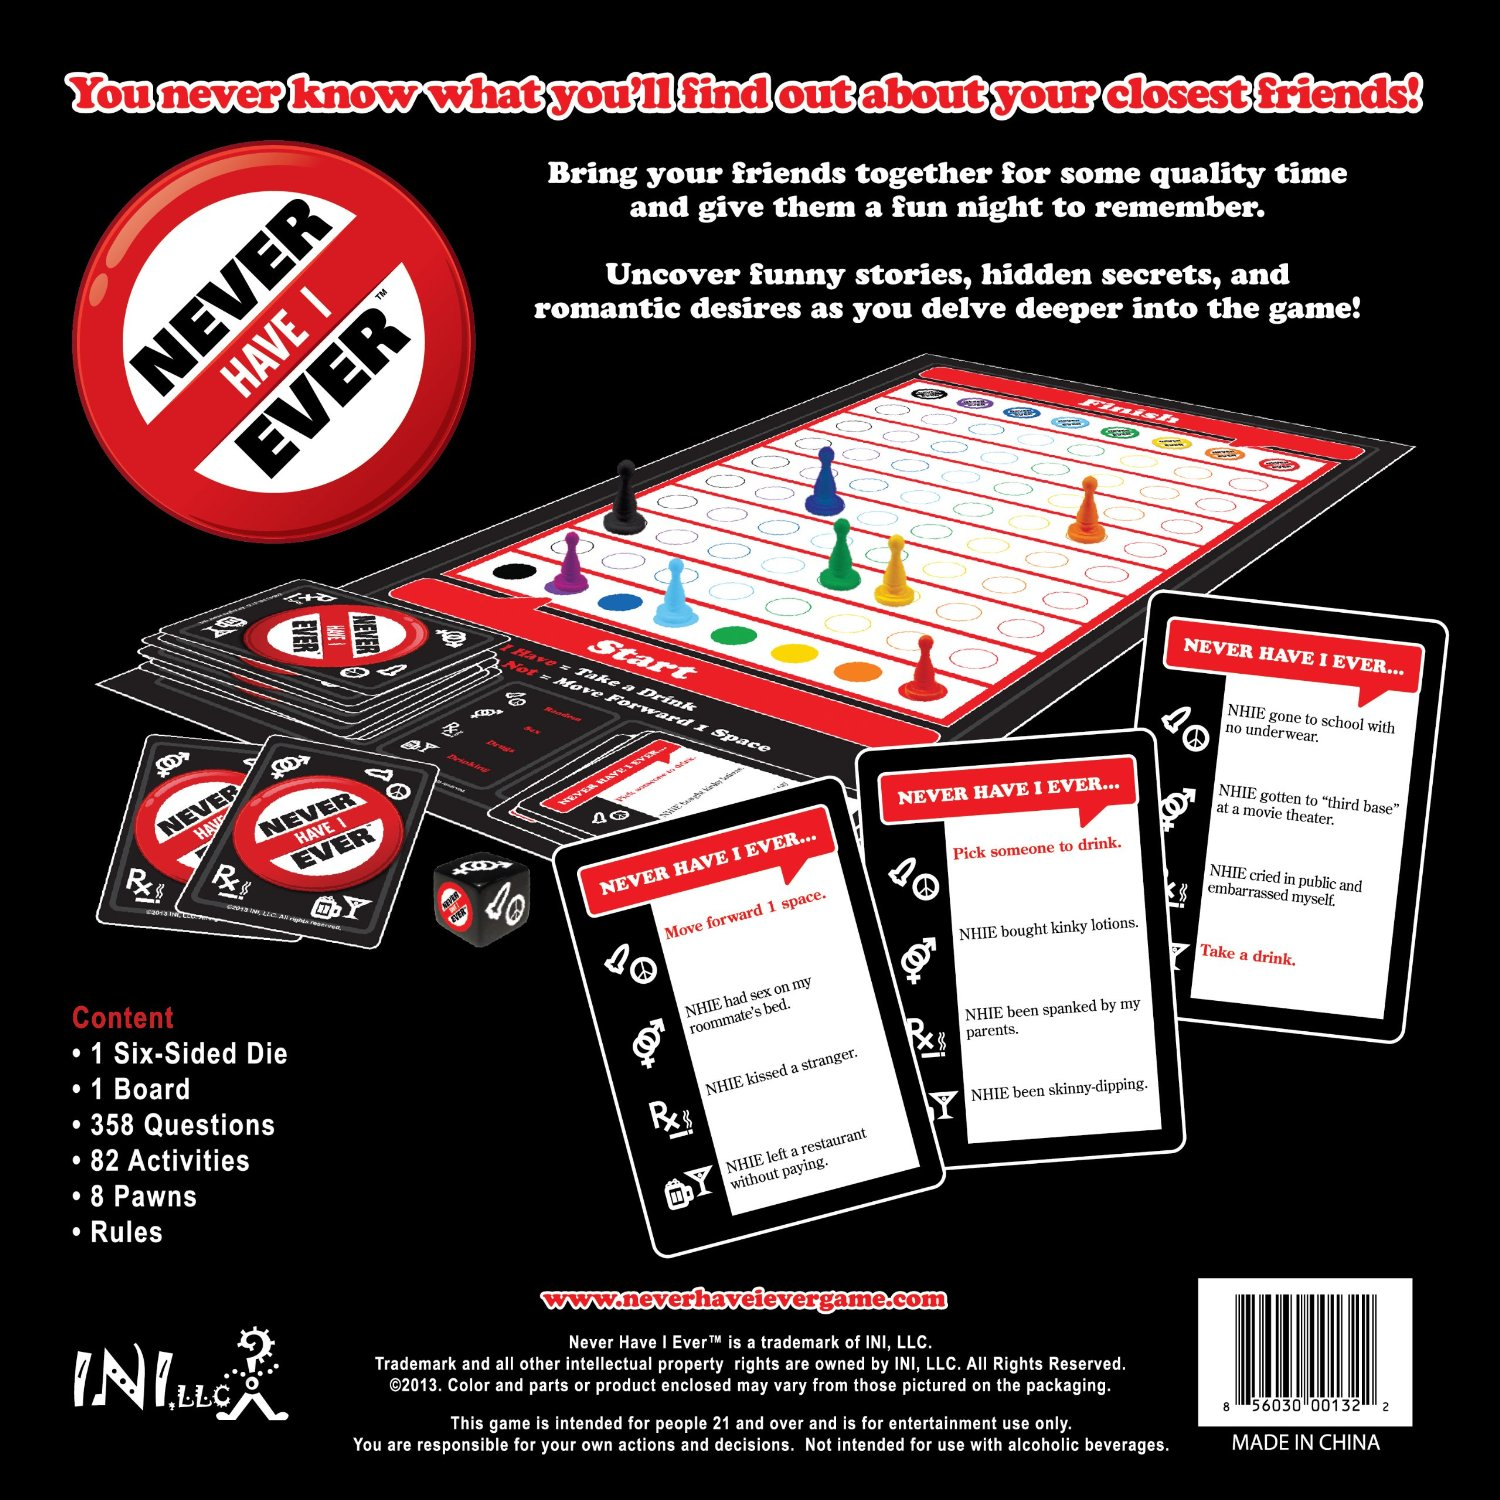 Never Have I Ever - The Classic Drinking Game | INI, LLC ...